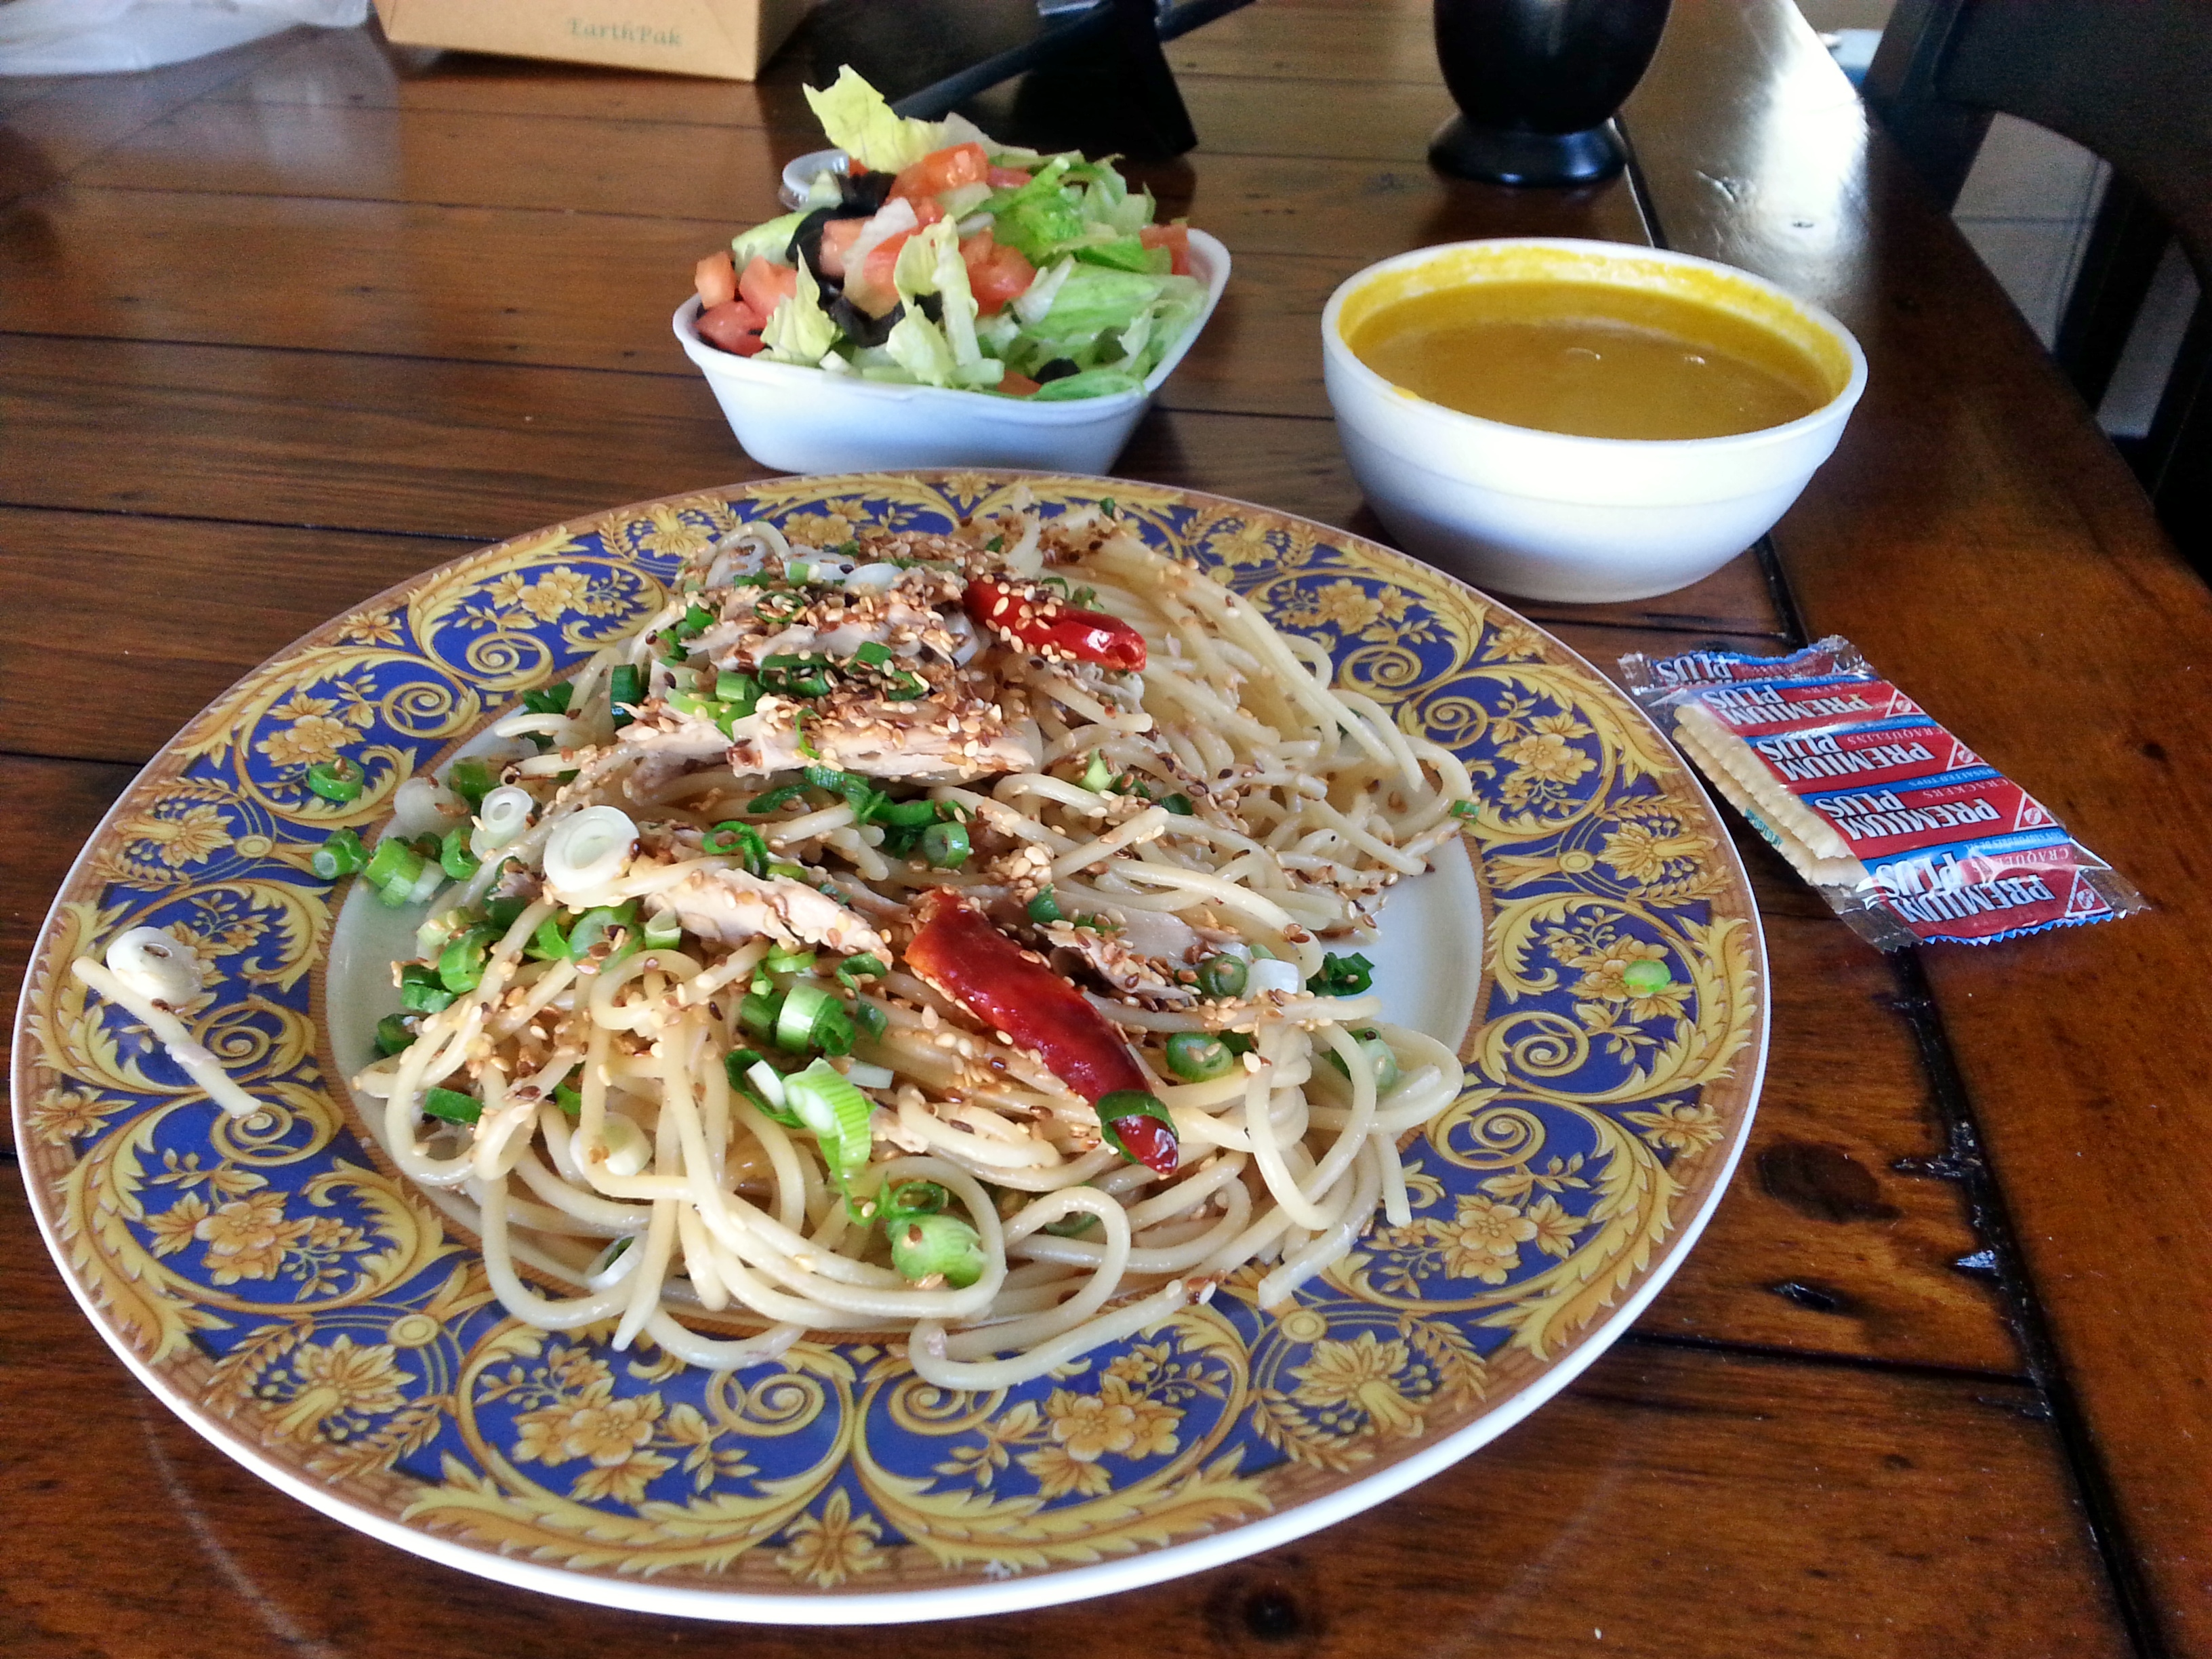 Japanese Chicken Spaghetti, Carrot and Orange Zest Soup, Salad